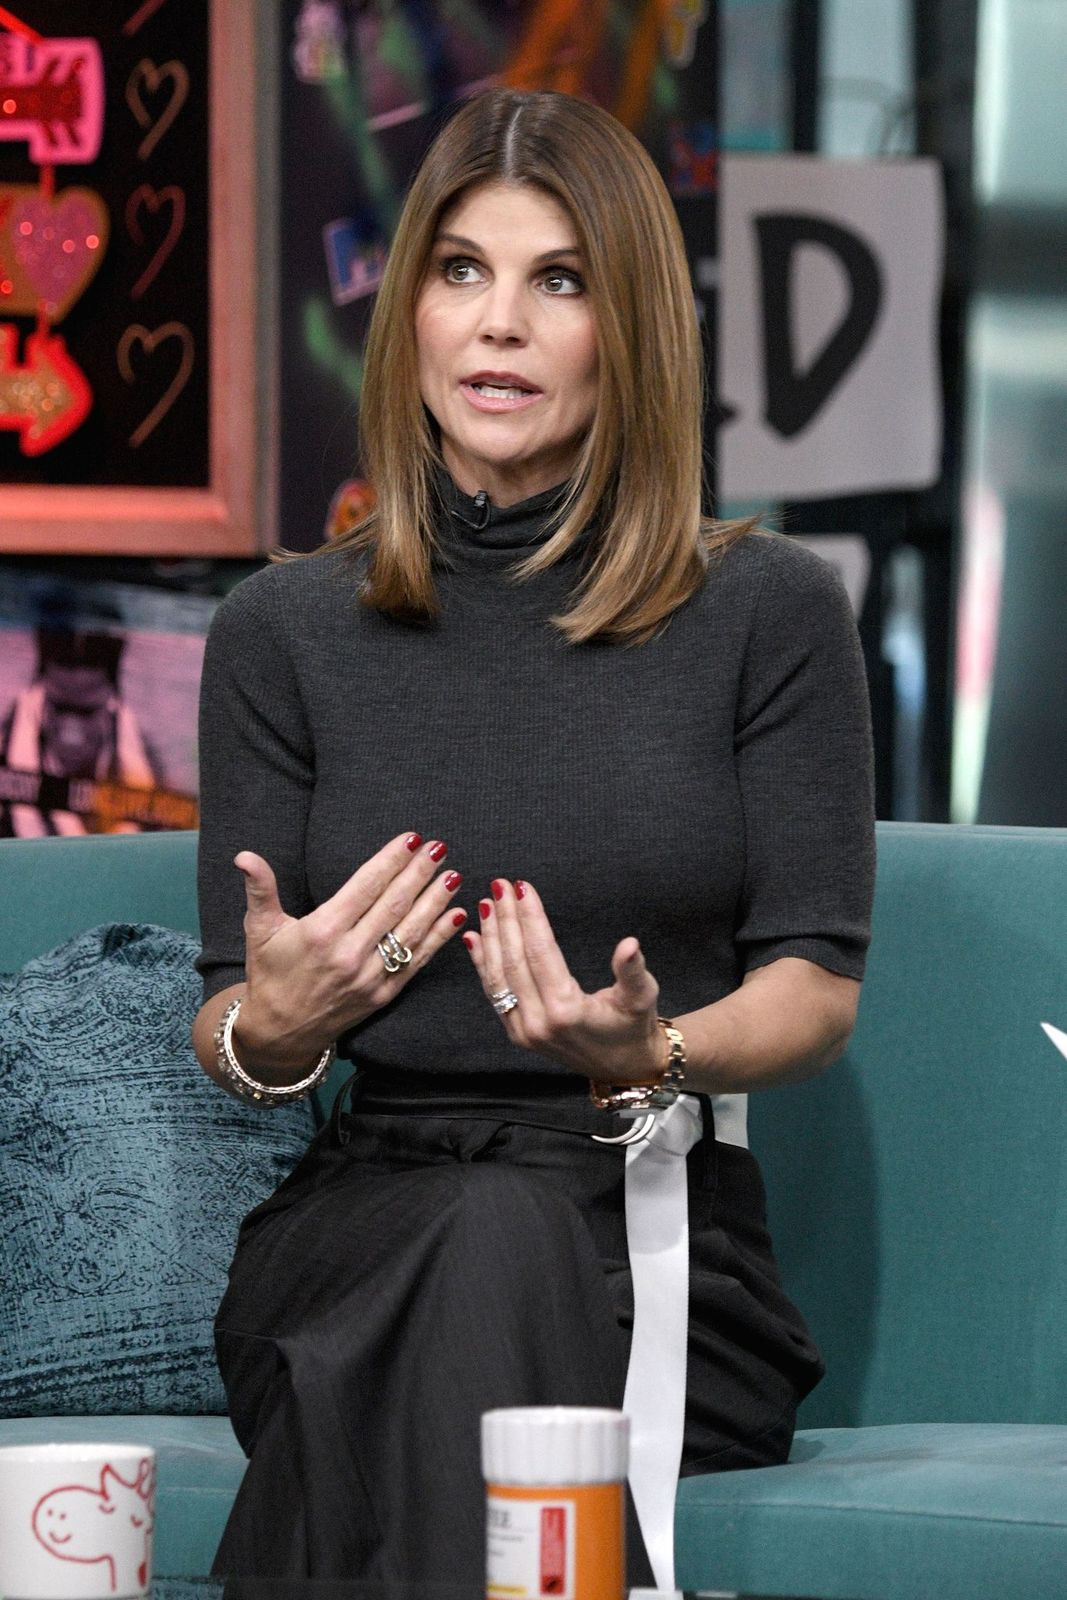 """Lori Loughlin visits the Build Brunch to discuss the series """"When Calls the Heart""""on February 14, 2019, in New York City 